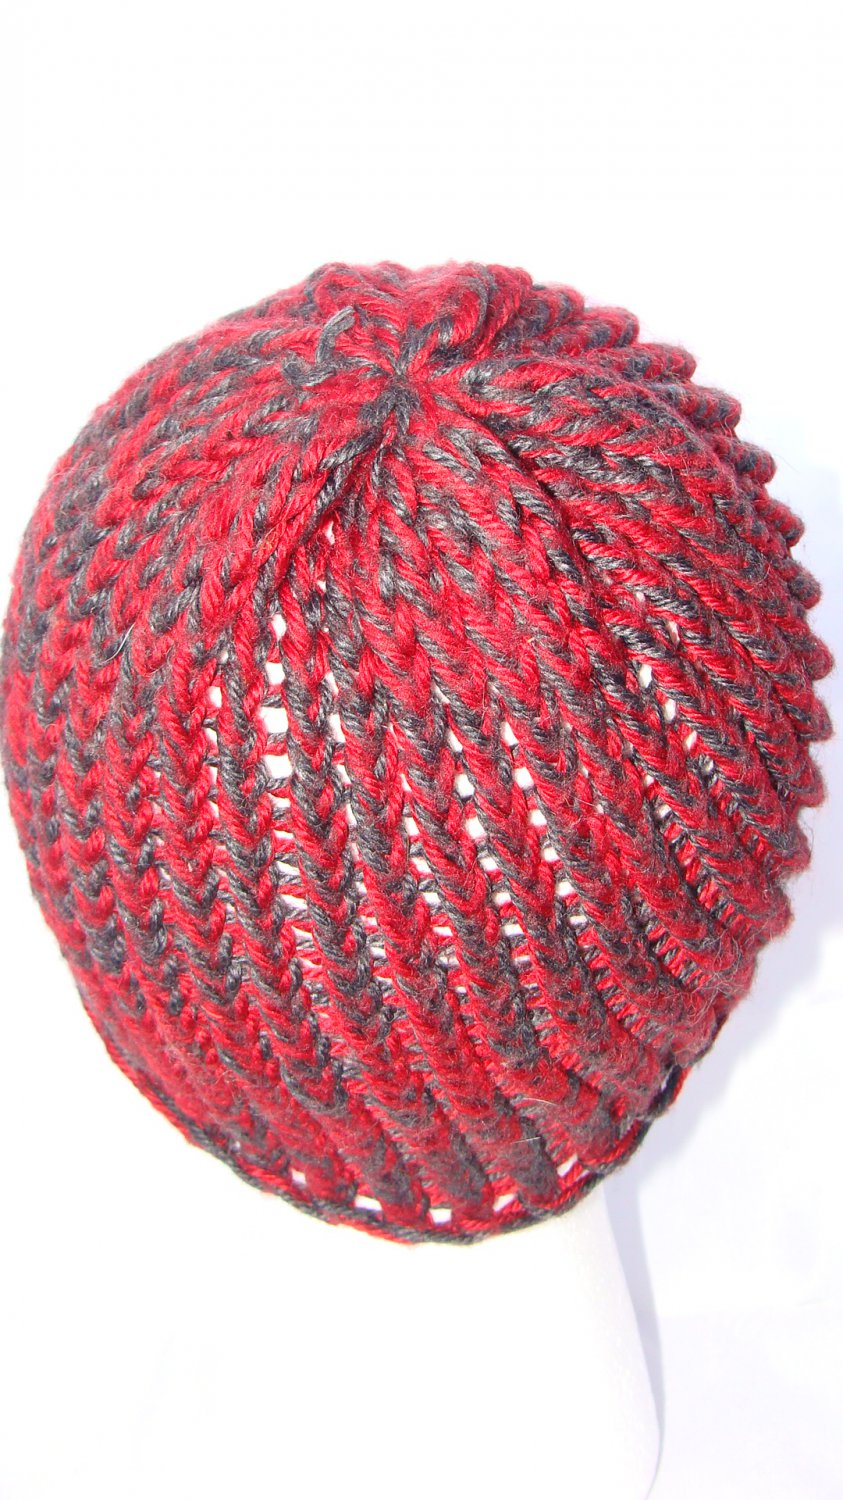 Adult Modest red and grey hat